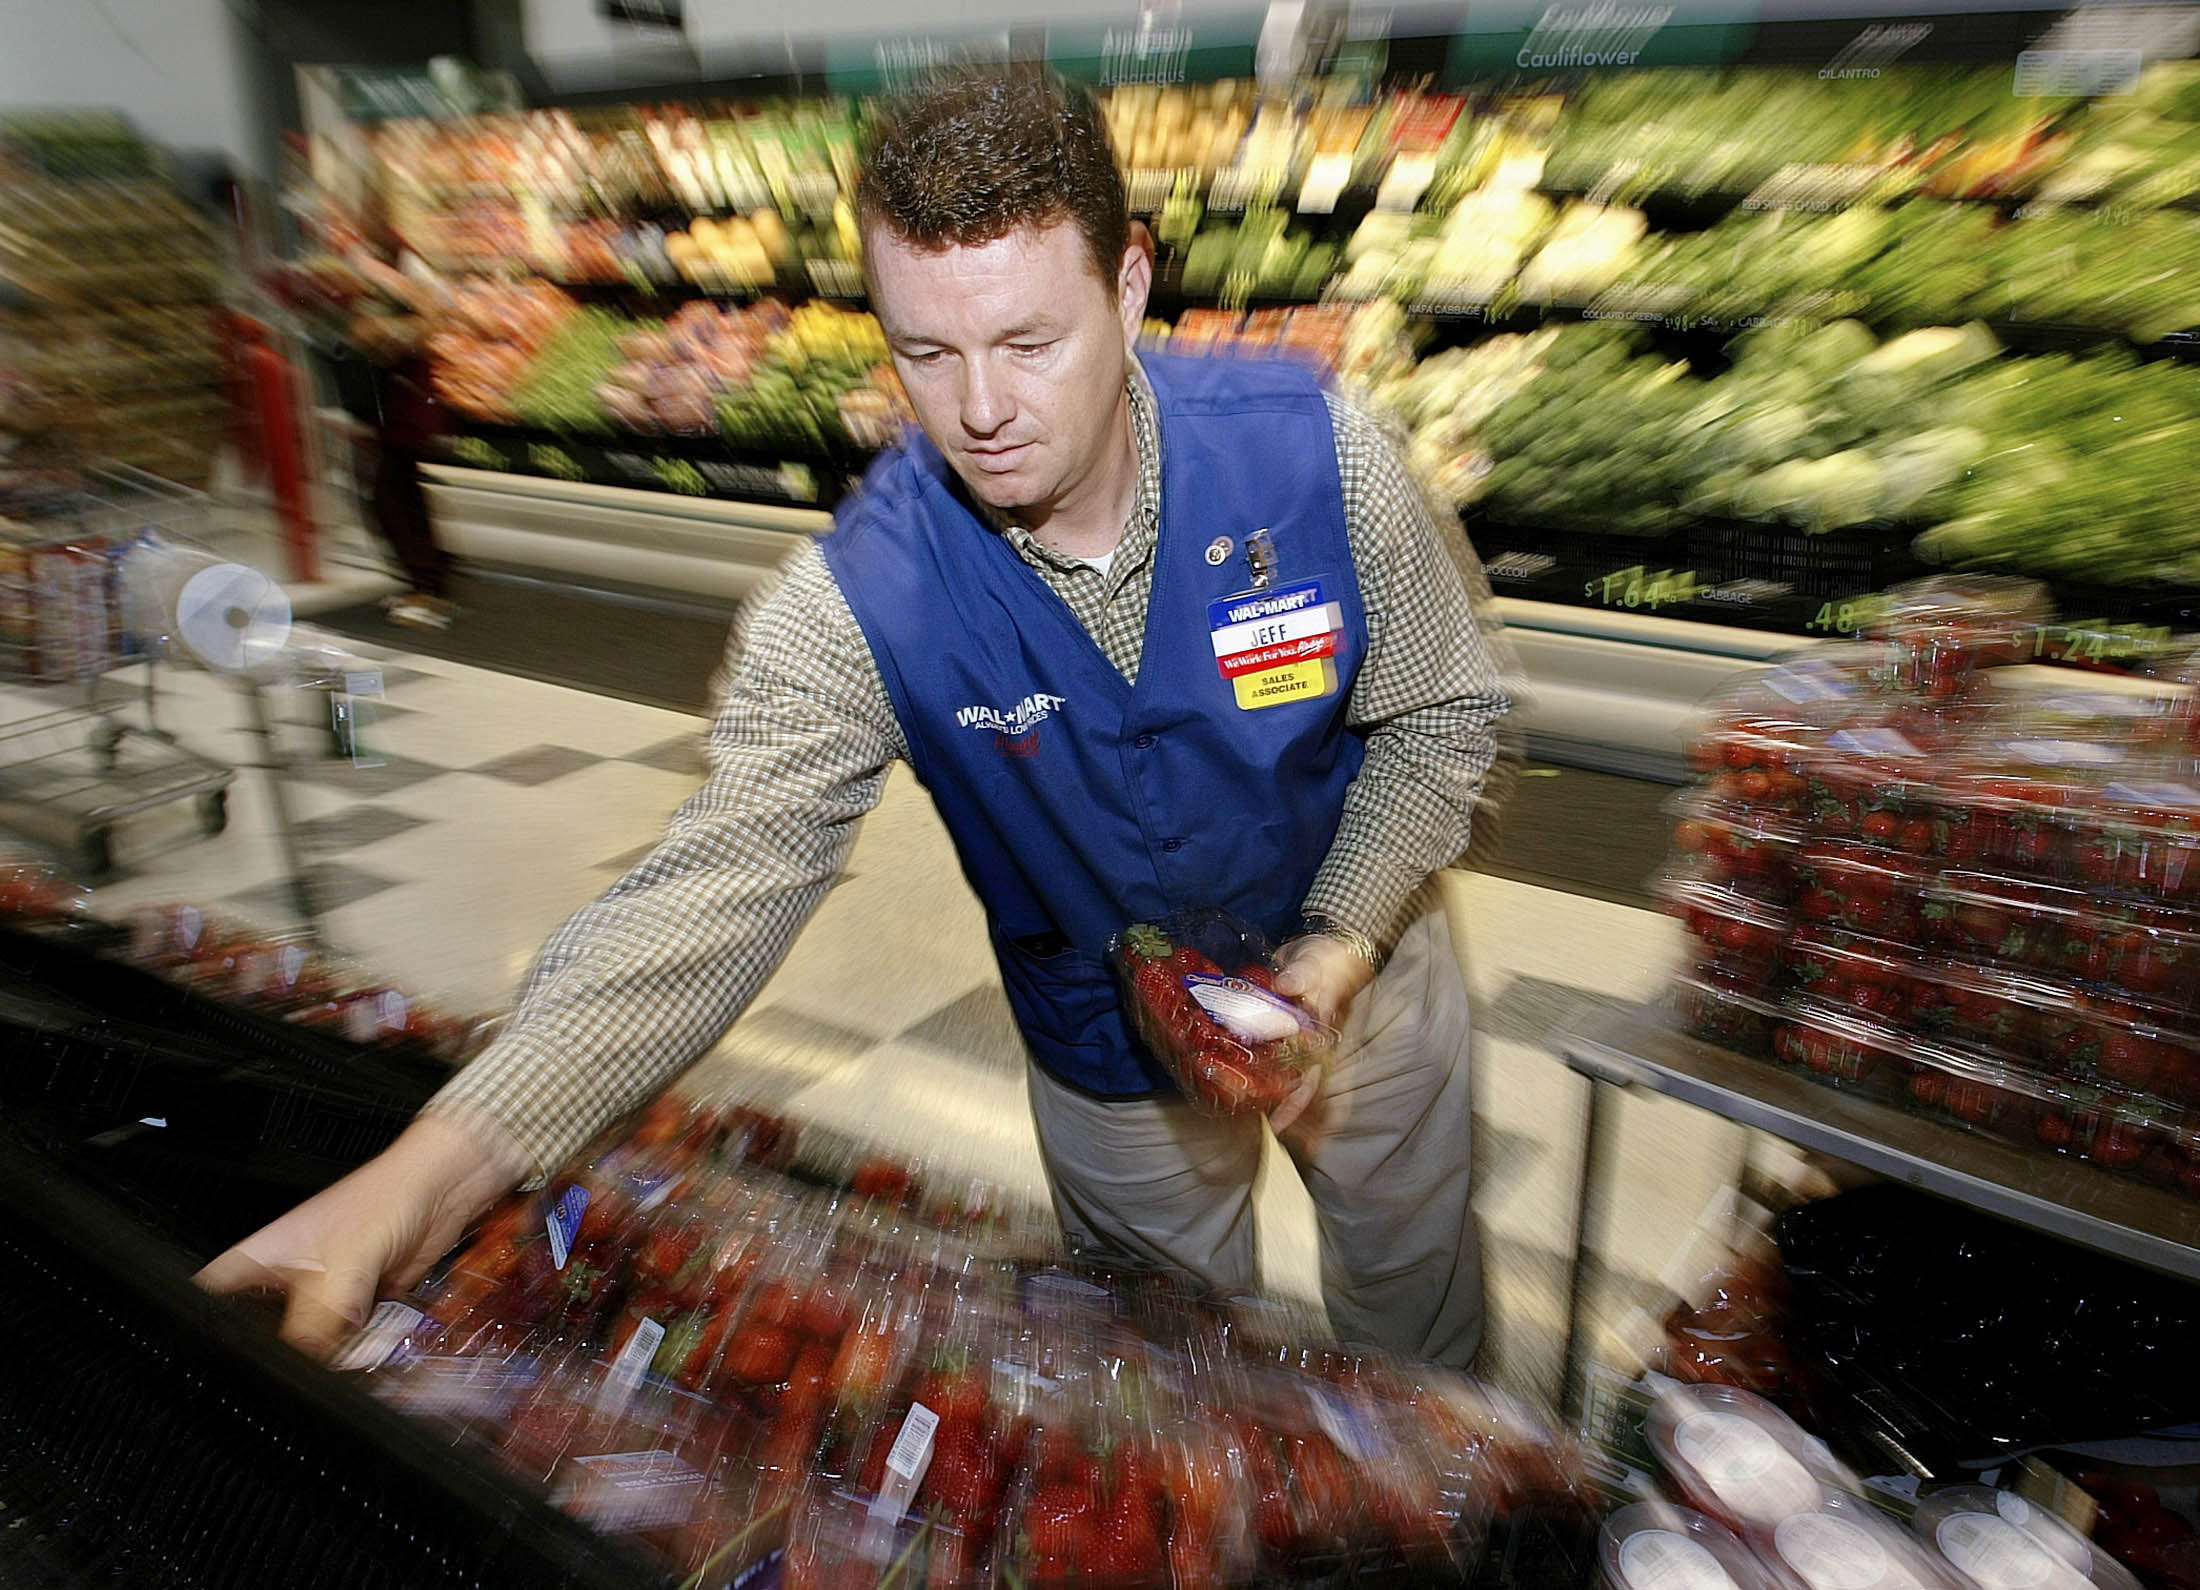 how much money does a grocery store manager make